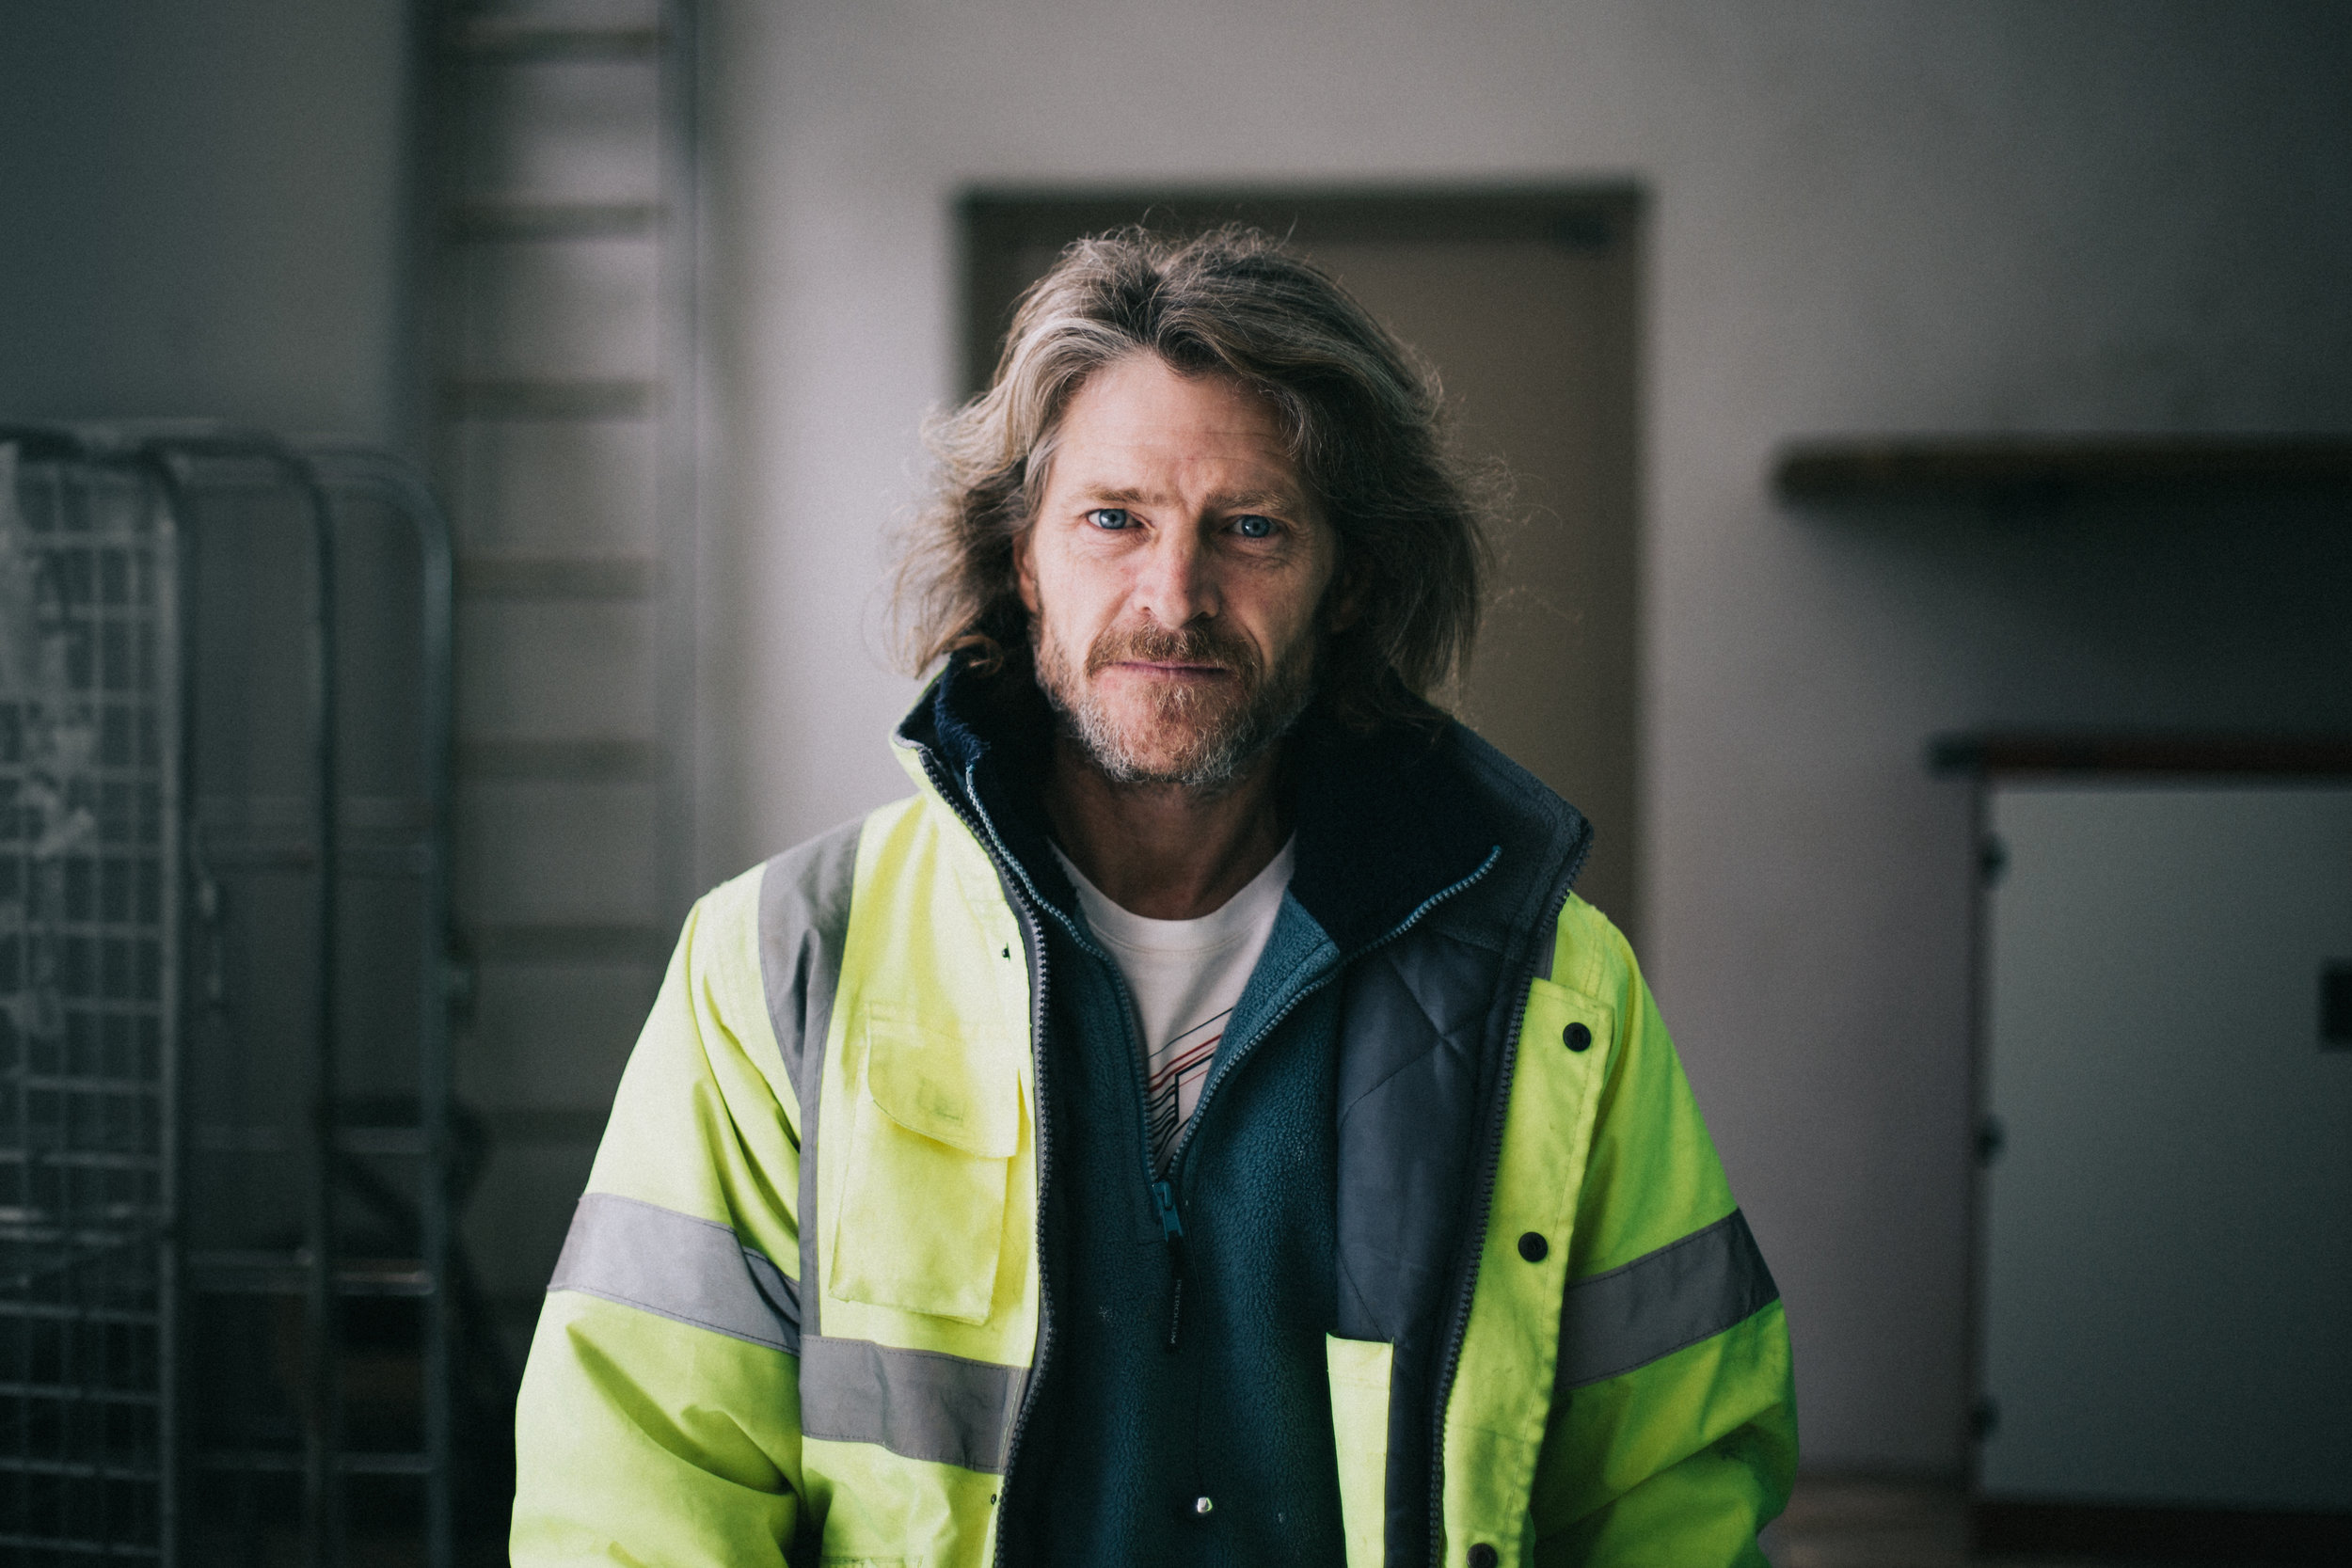 Carpenter Paul, a former soldier, stands at Falmouth University's Penryn Campus where he now works doing maintenance jobs.